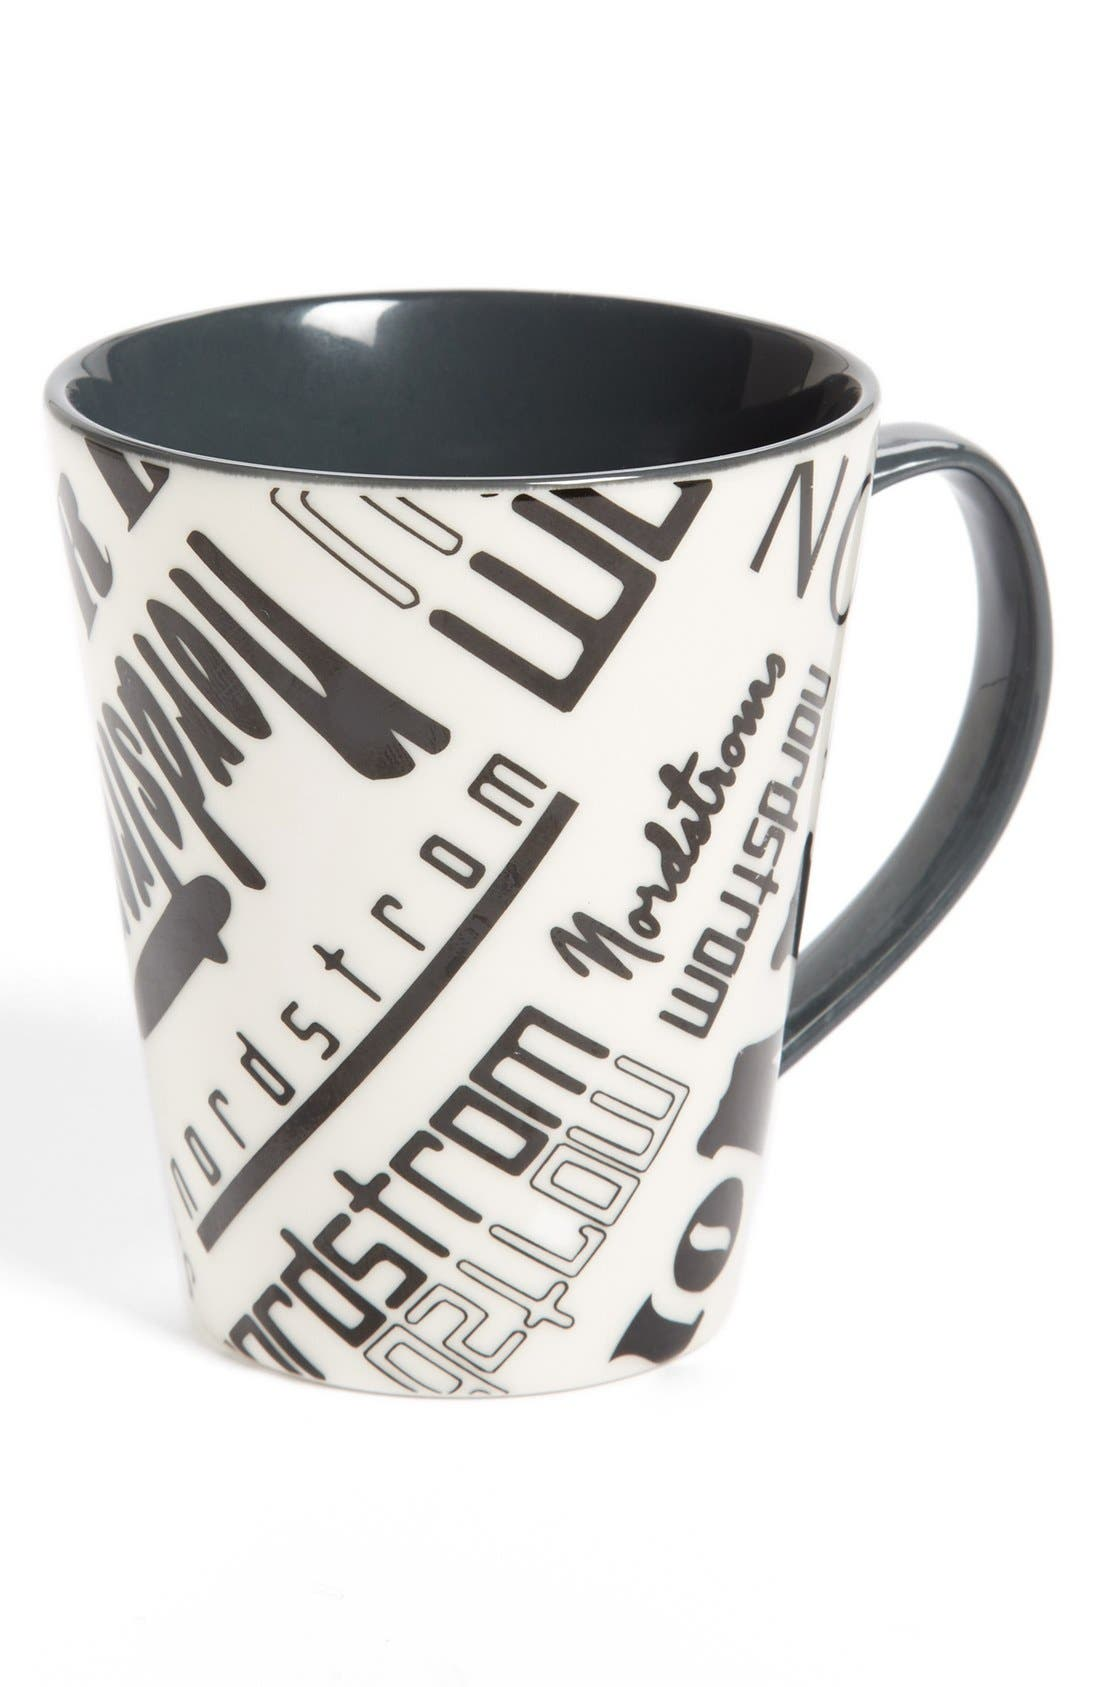 NORDSTROM AT HOME Nordstrom Heritage Collection 'Historical Nordstrom Logo' Print Coffee Mug, Main, color, 020